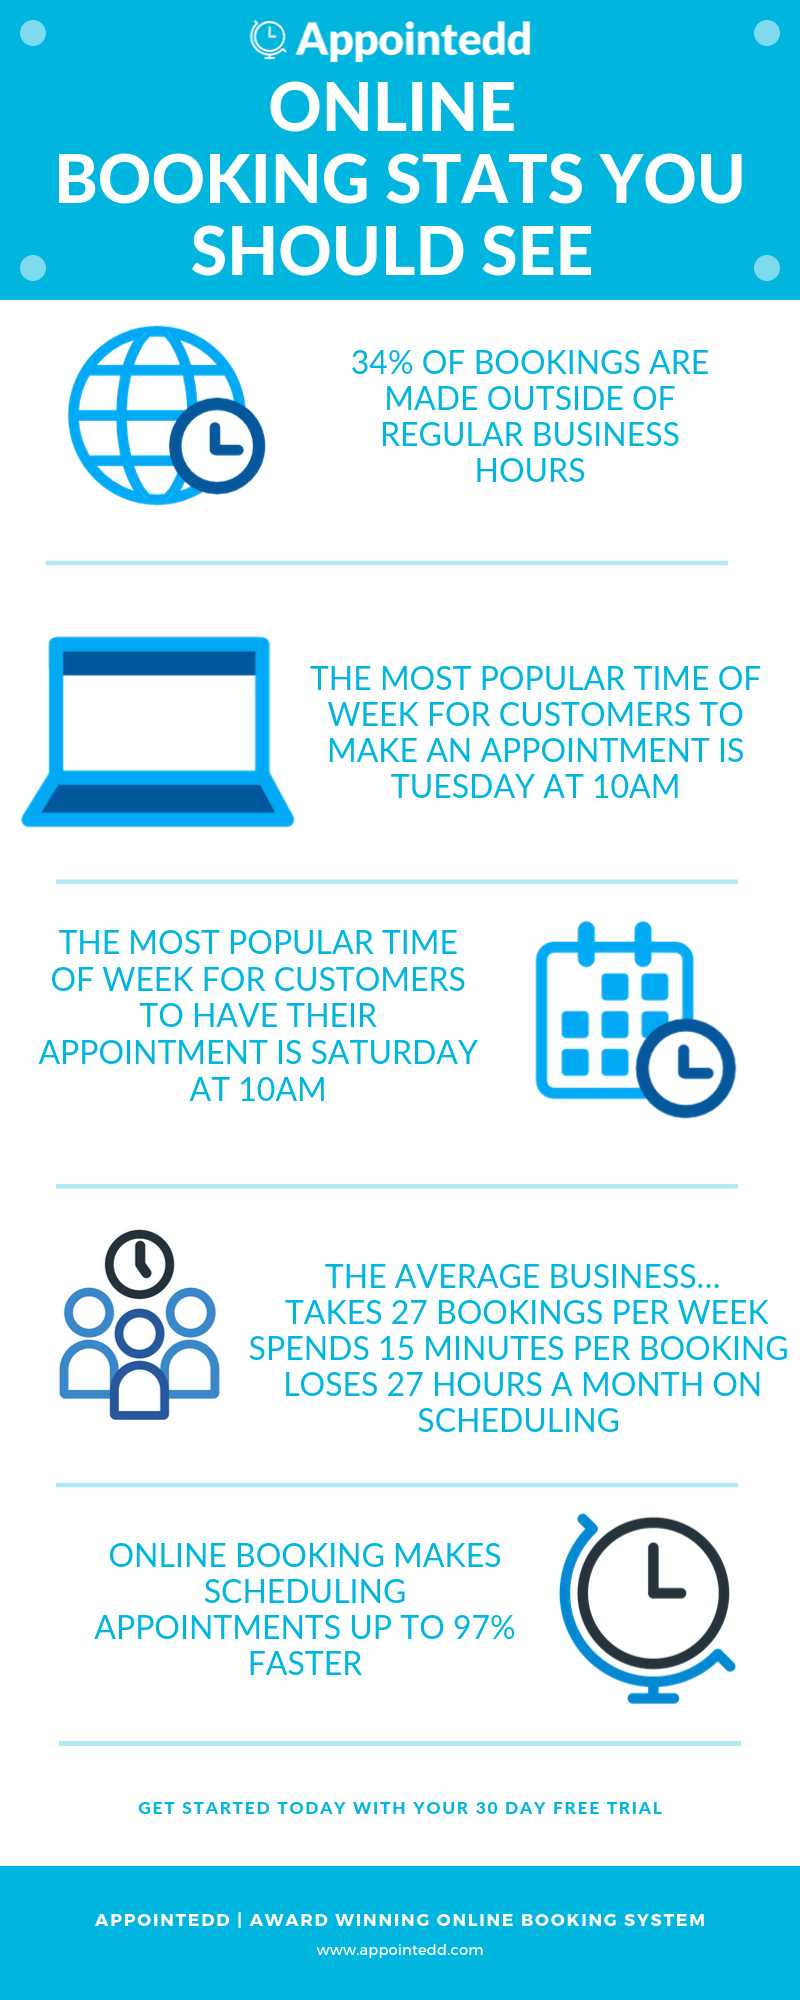 Online booking stats you should see infographic